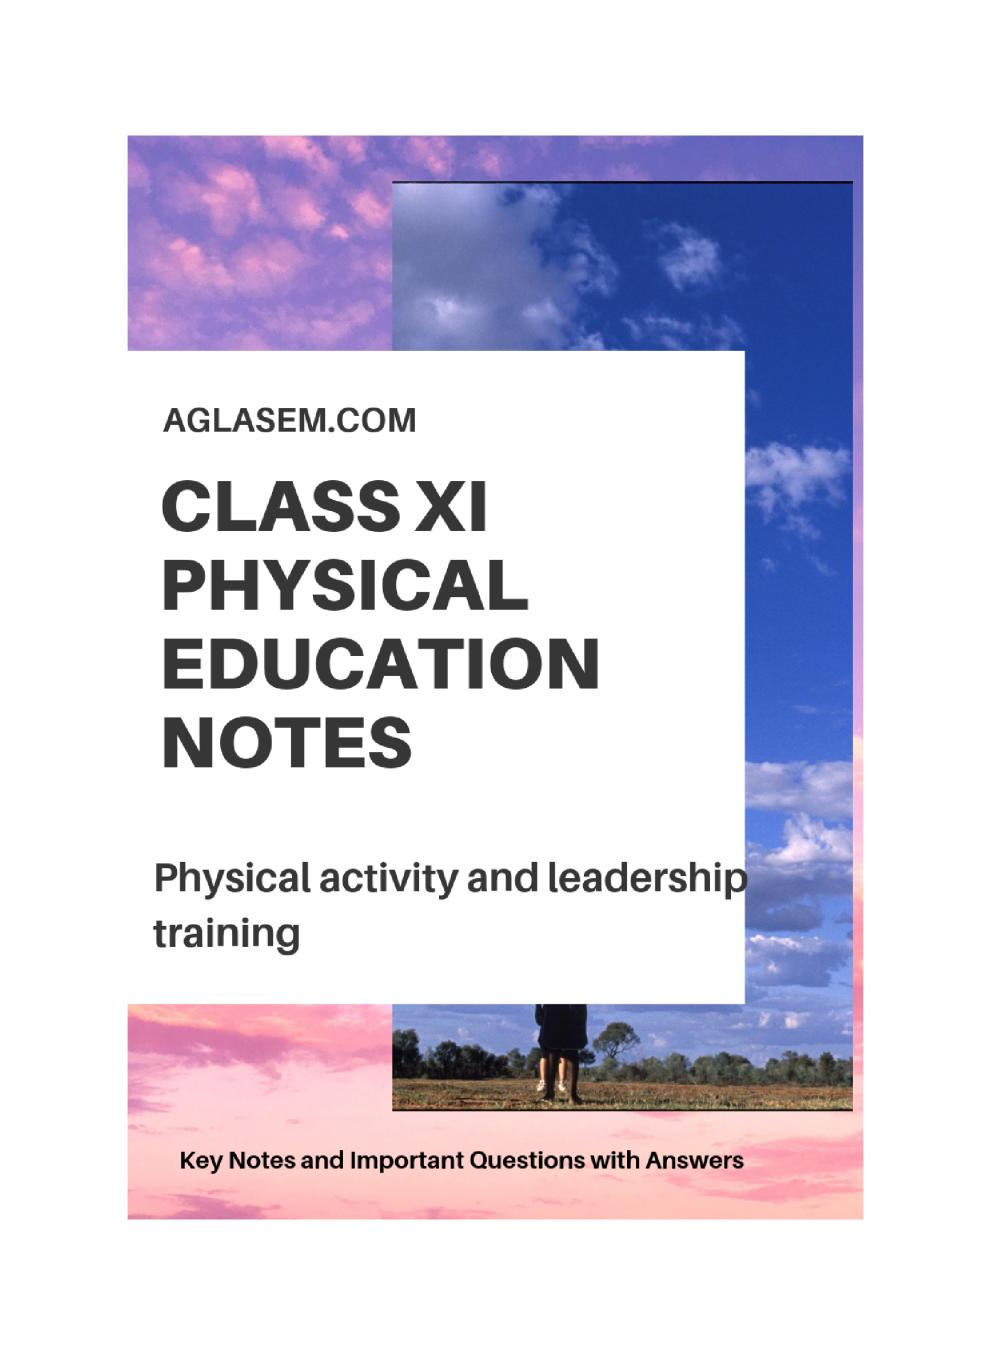 Class 11 Physical Education Notes For Physical Activity and Leadership Training